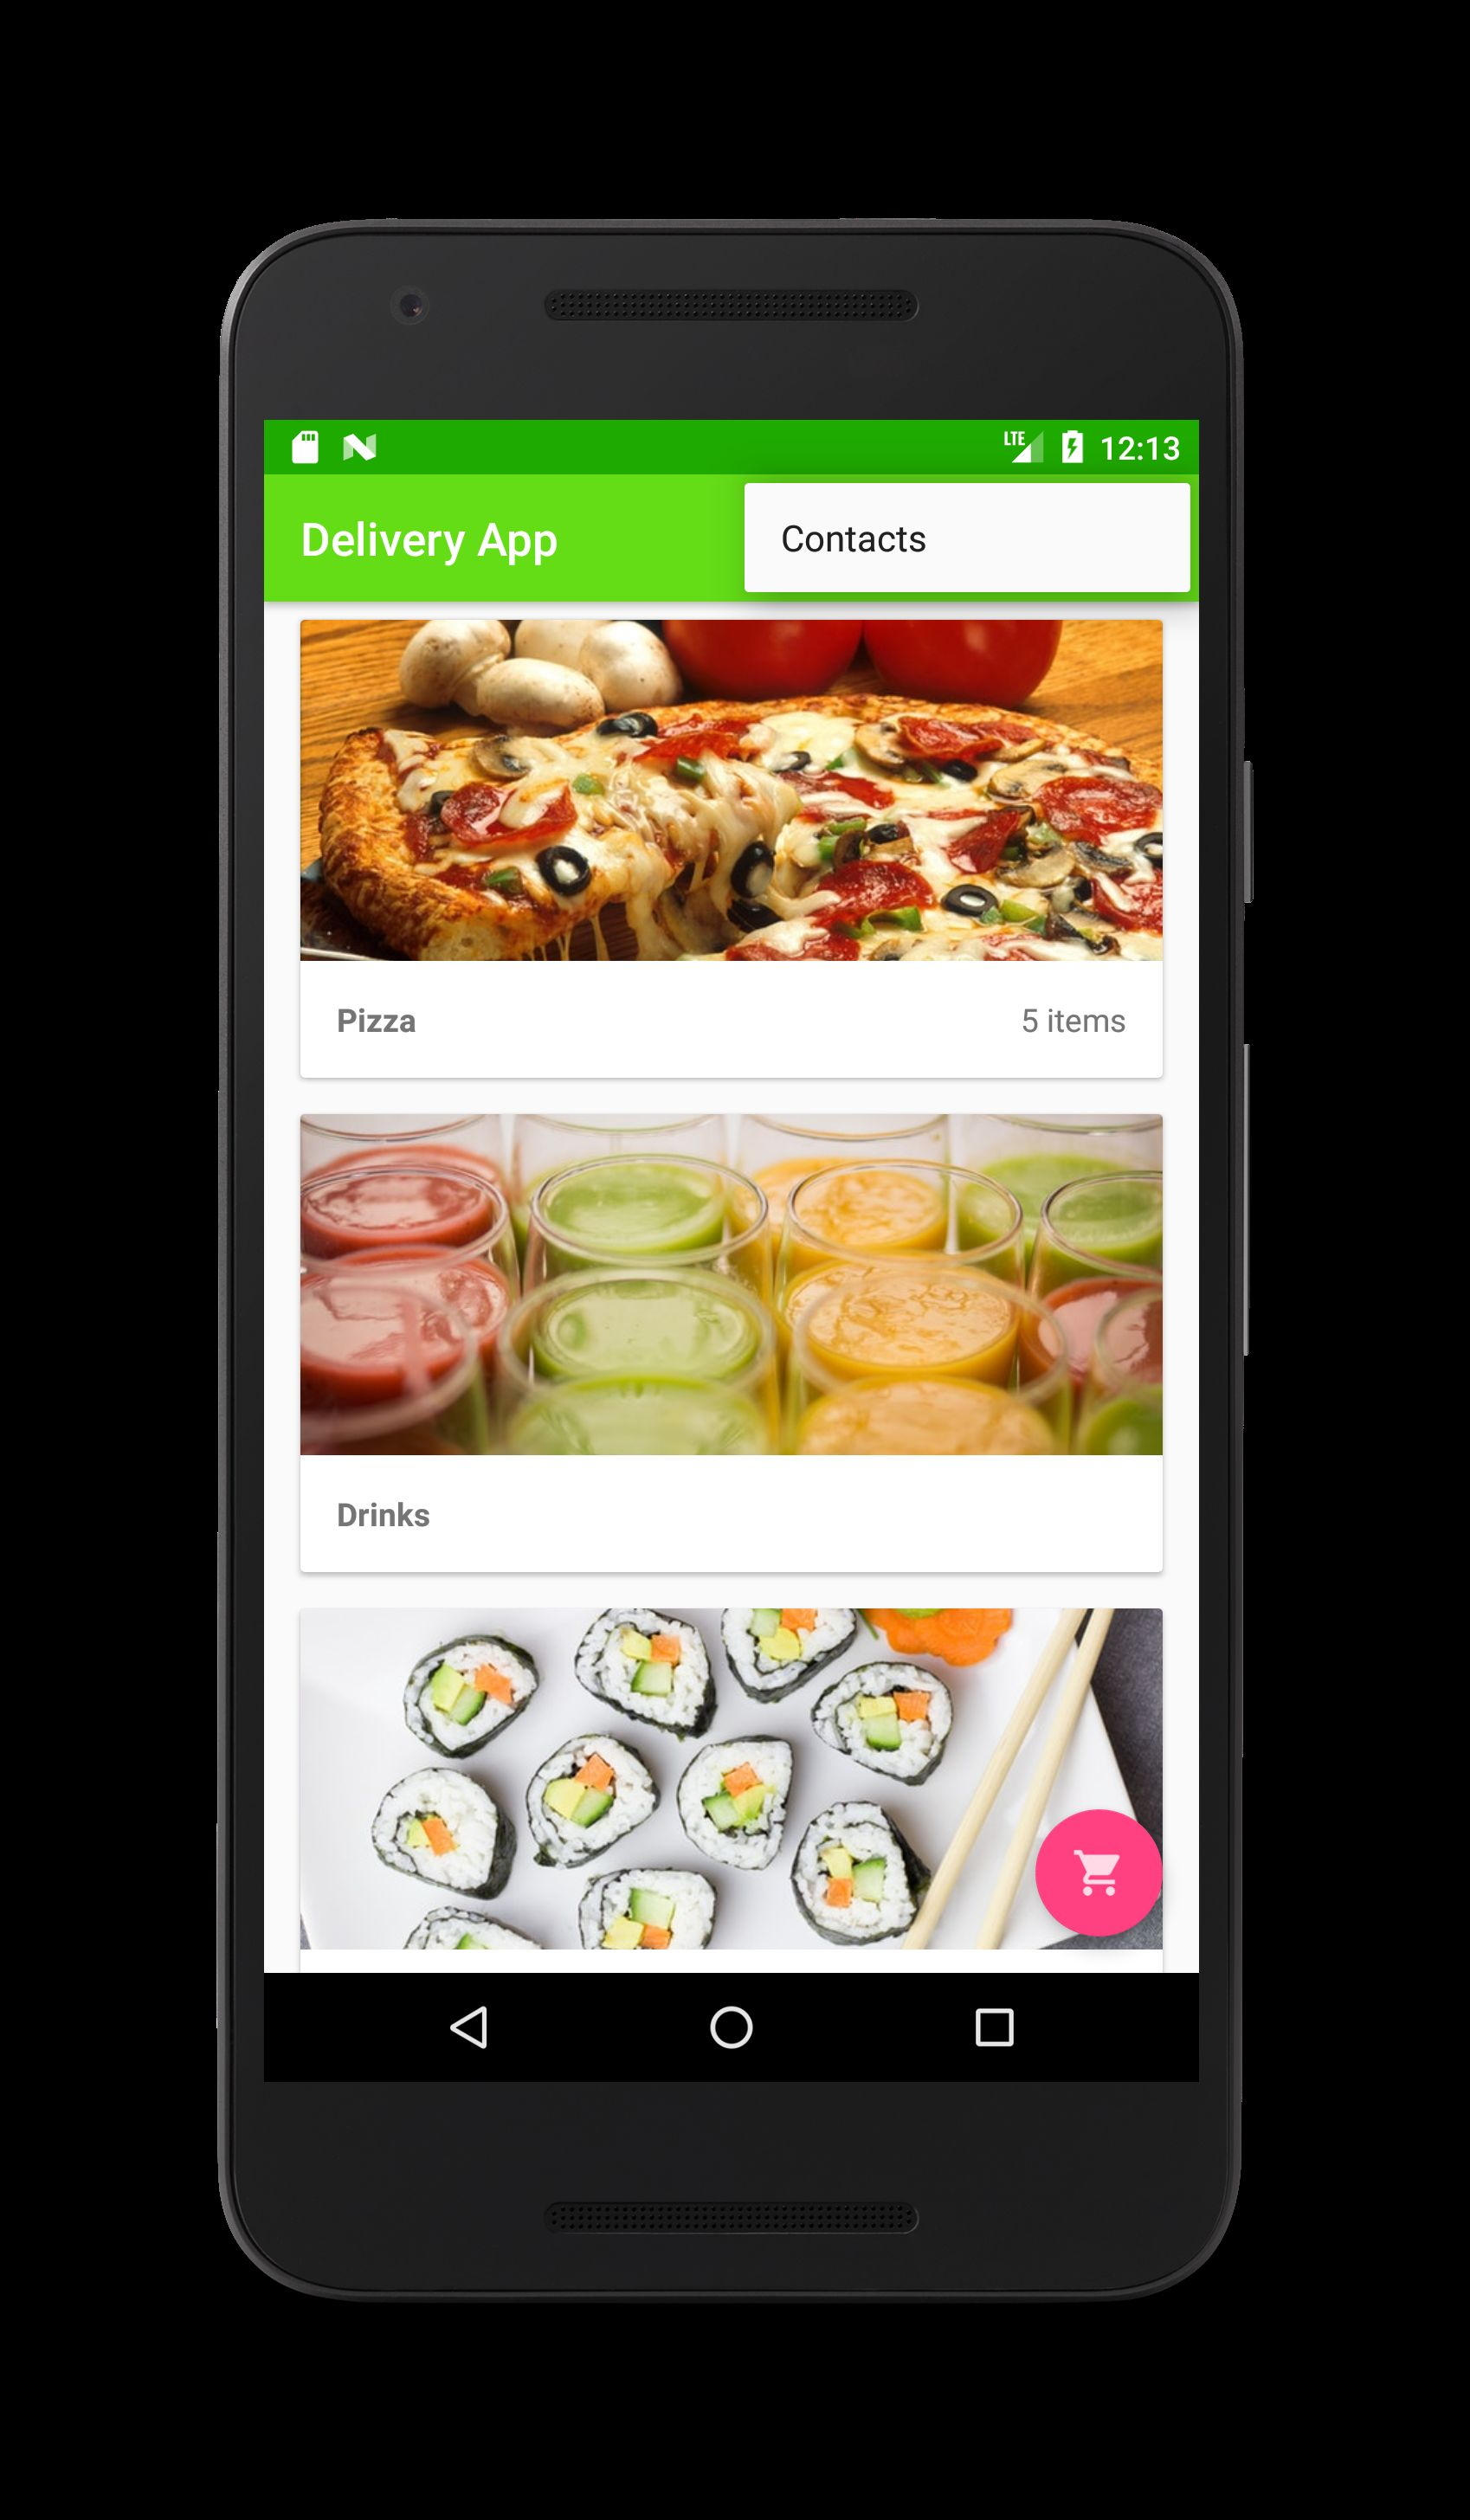 Food Delivery Restaurant App - Android Source Code Screenshot 1